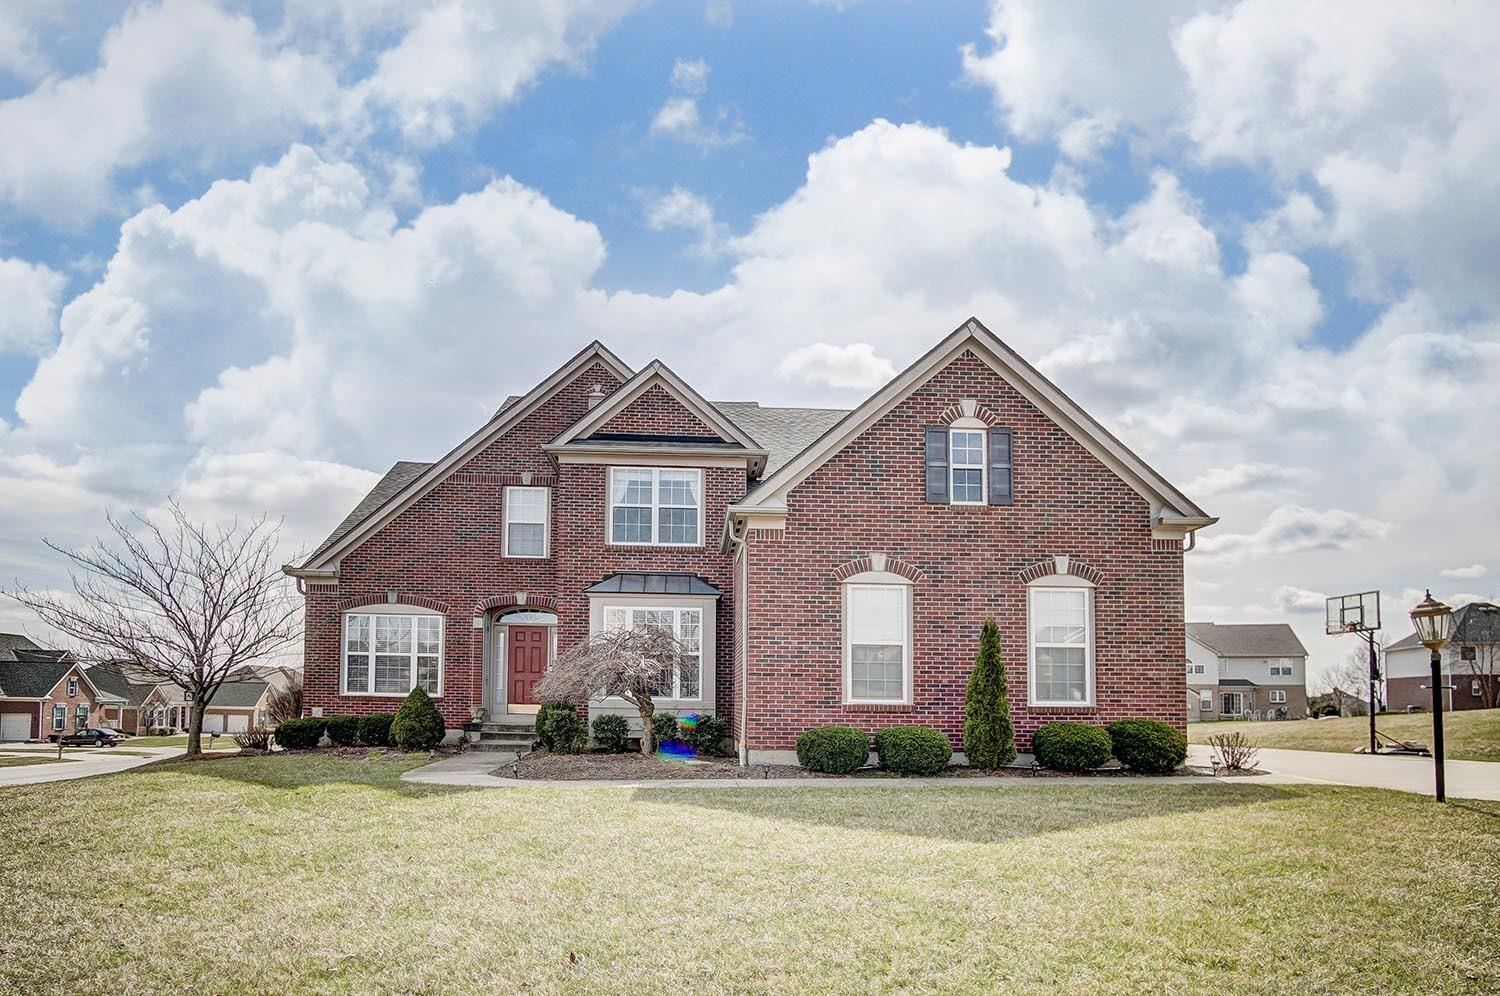 7665 Foxchase Dr West Chester - West, OH